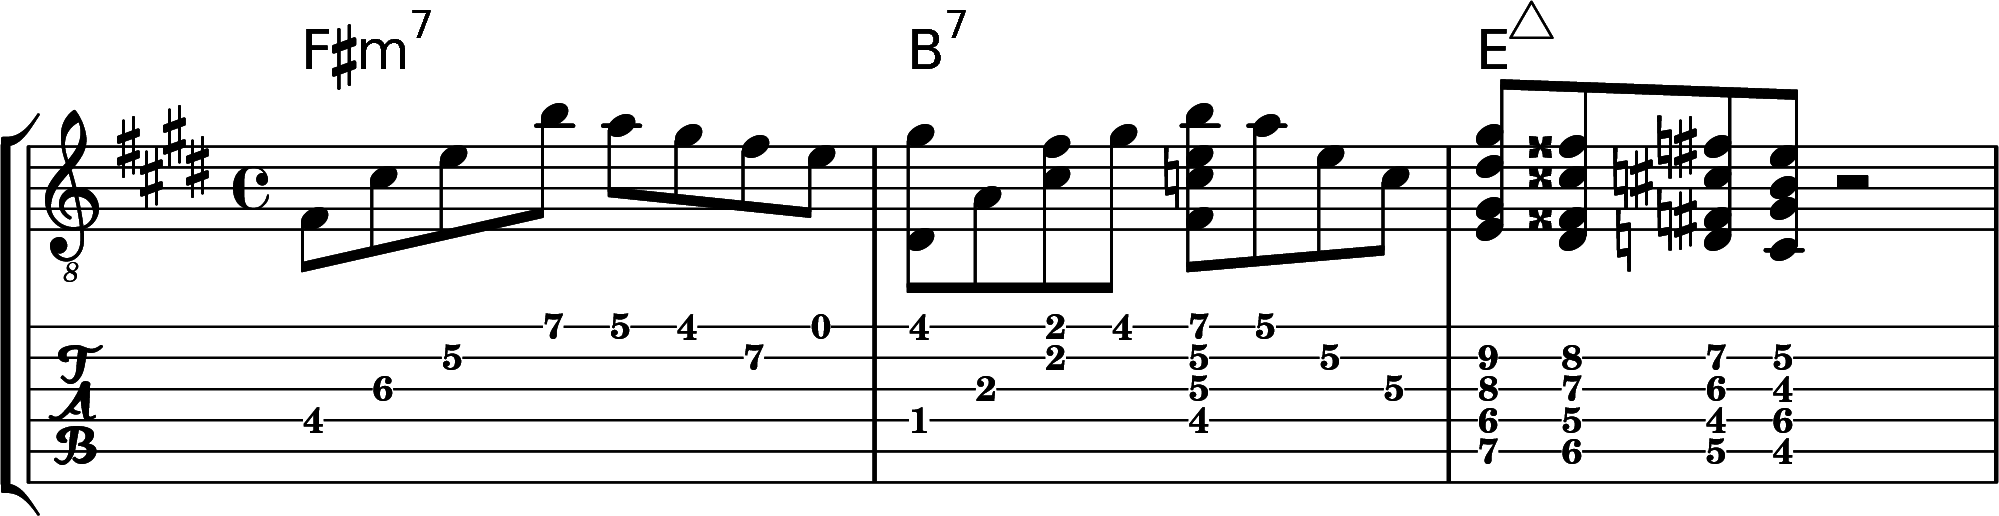 Fancy guitar tablature for Major 2-5-1 chord progression in the key of E